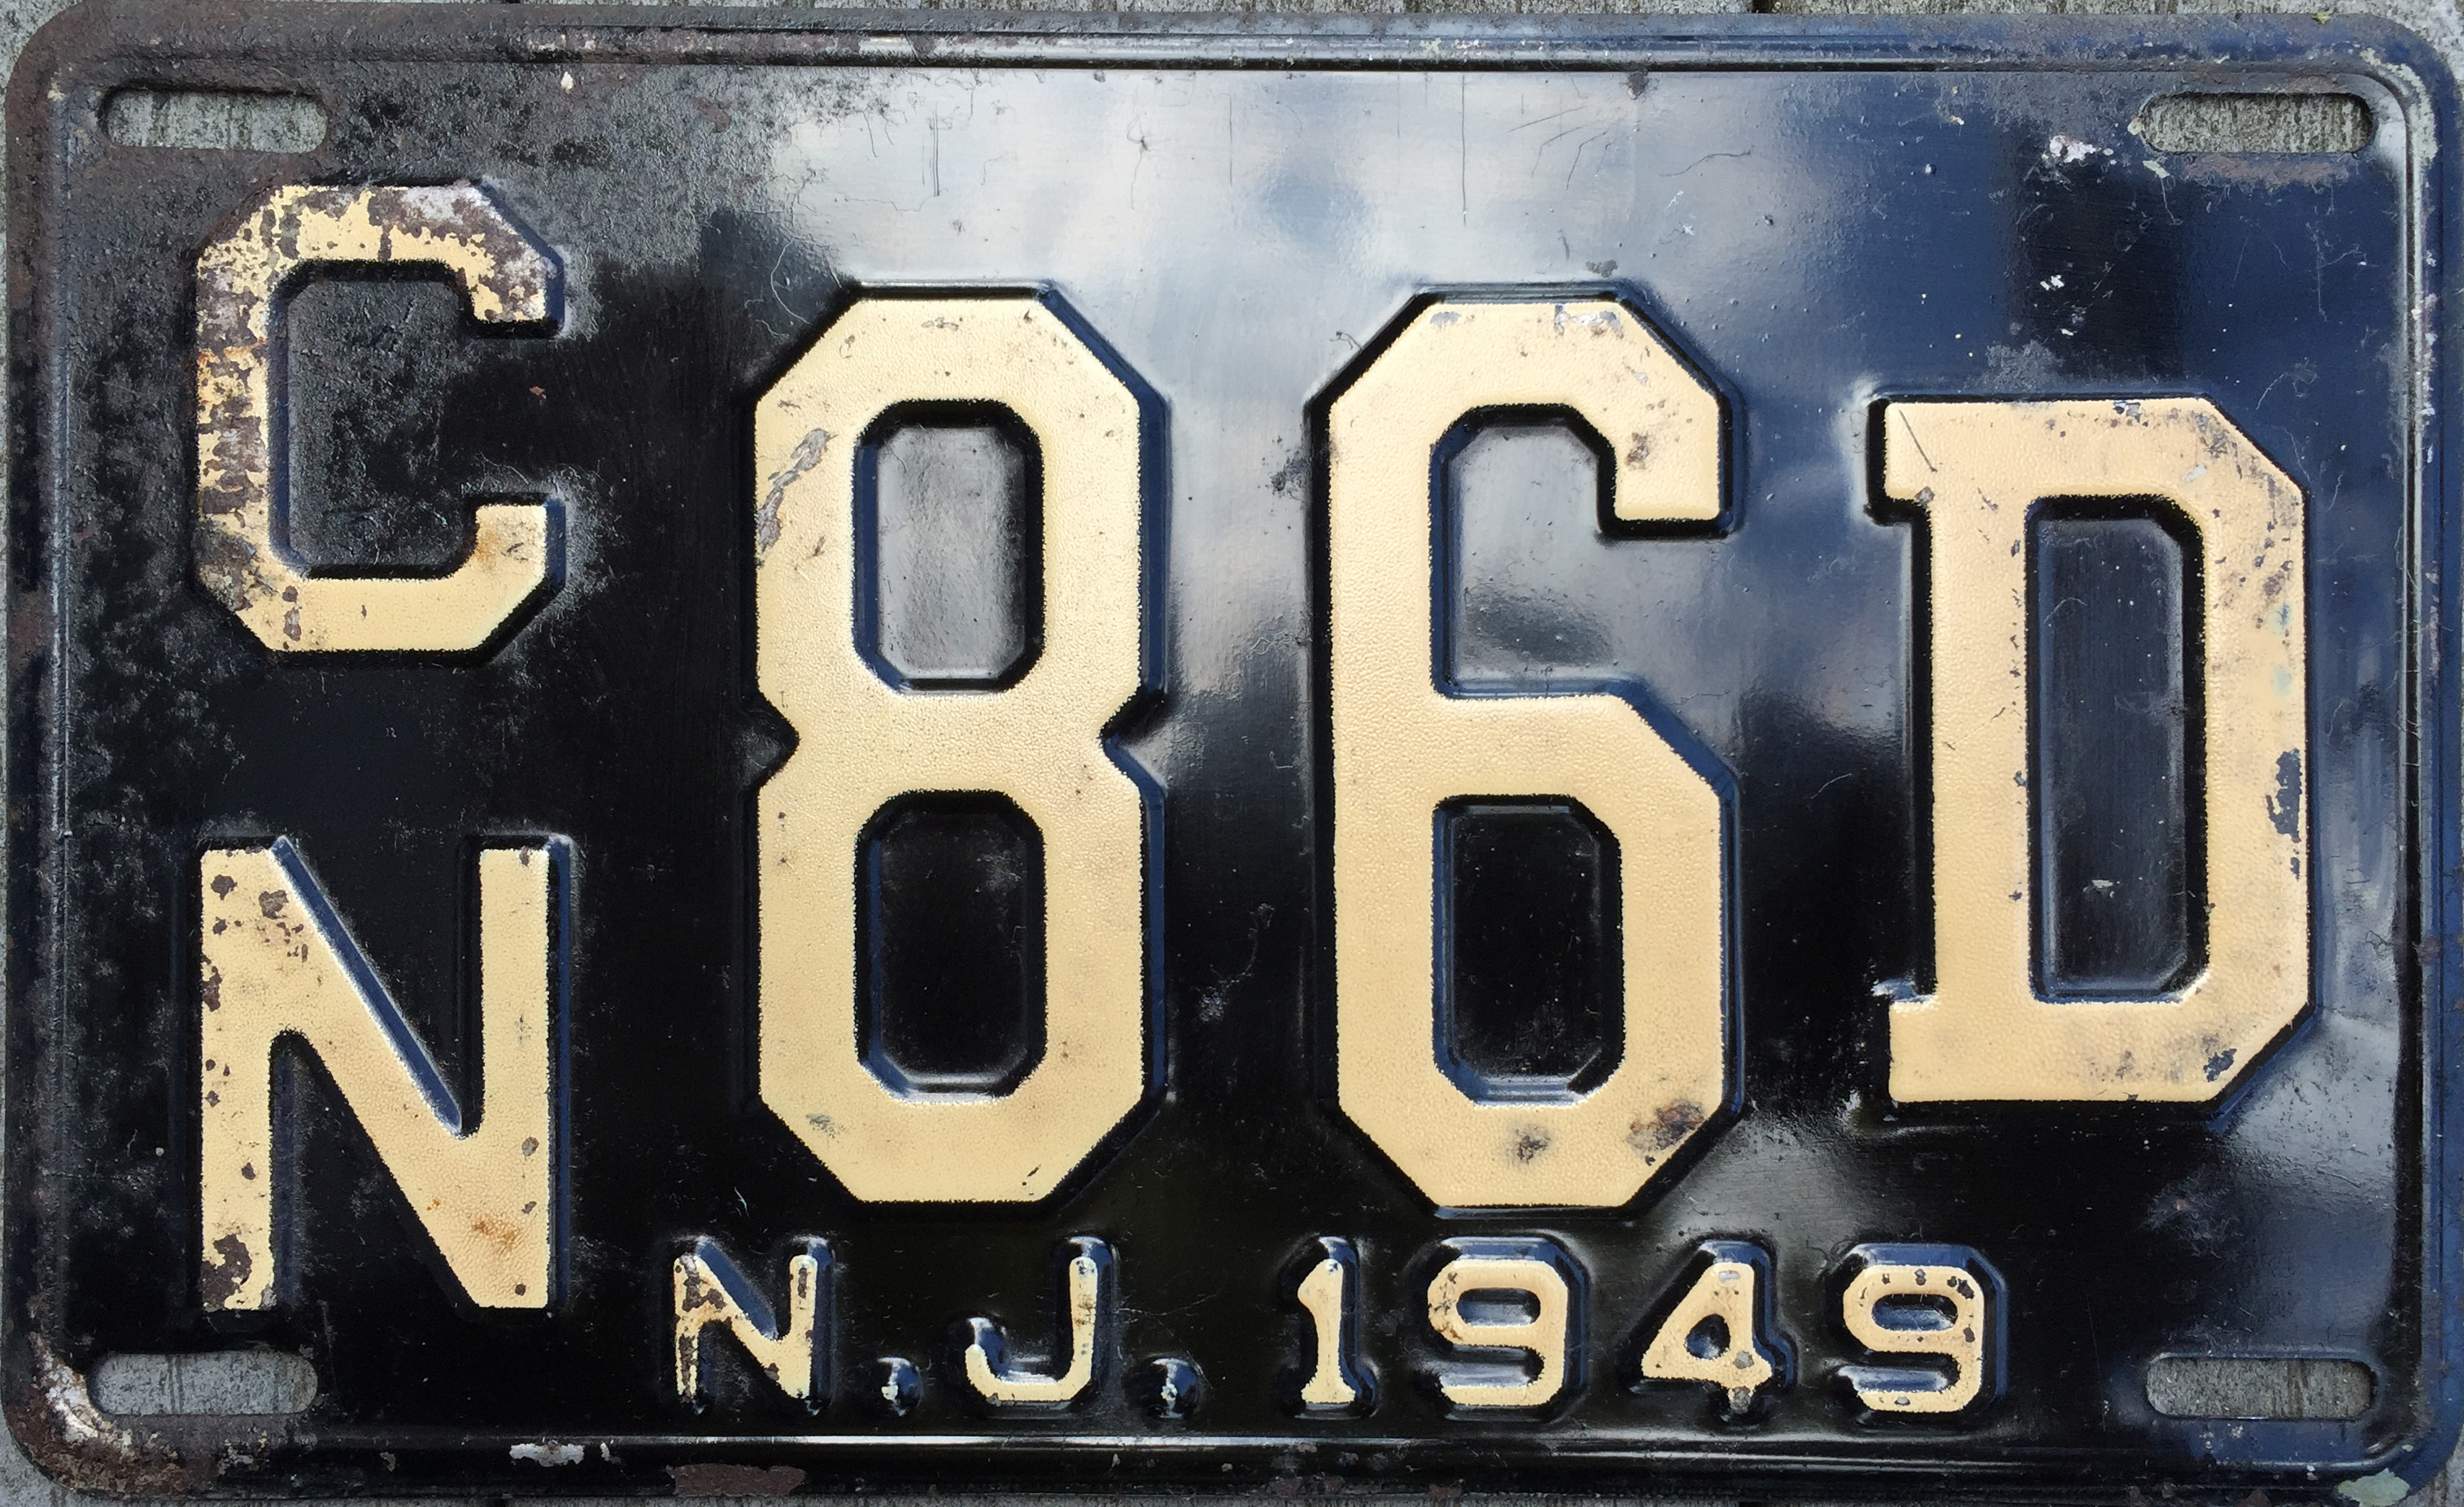 File:1949 New Jersey license plate.JPG - Wikimedia Commons